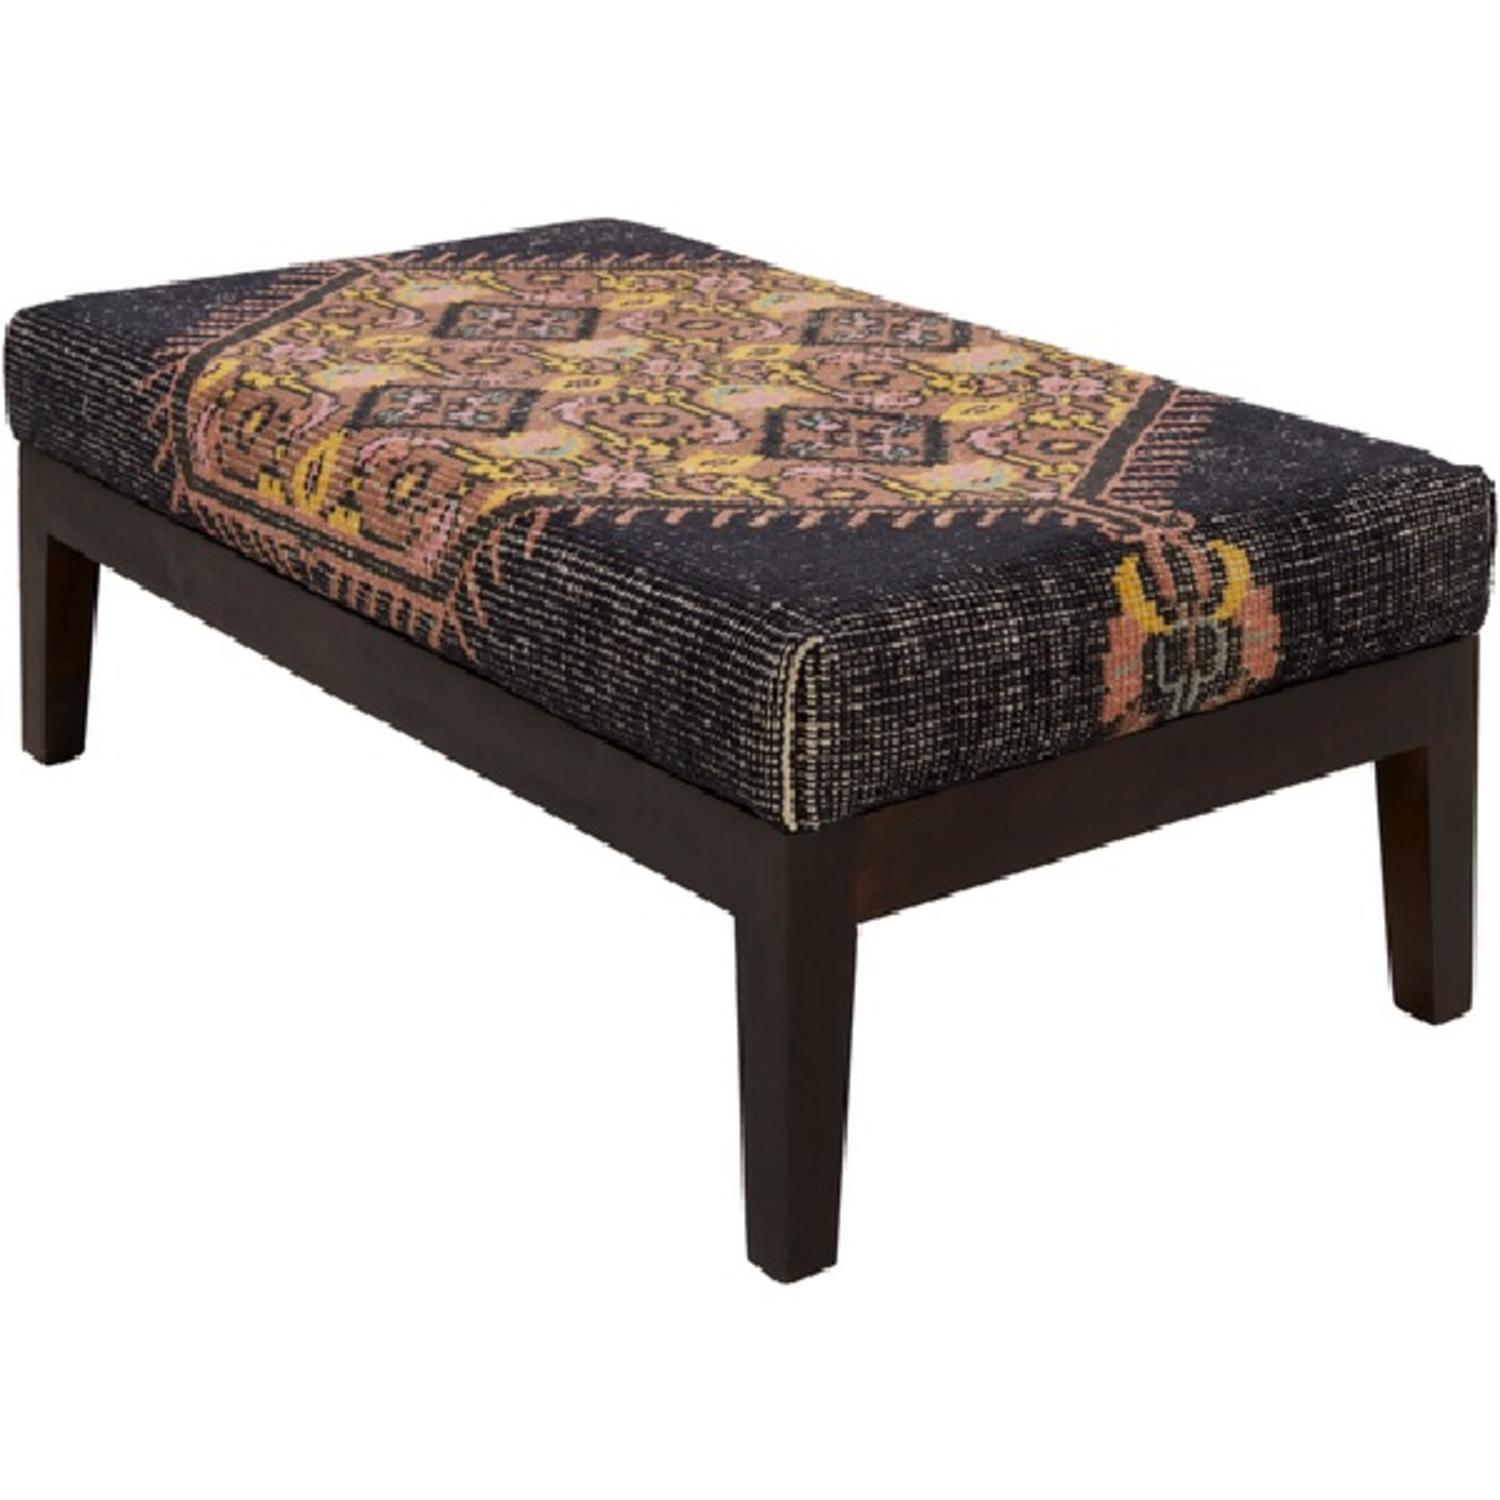 "47"" Zahra Deep Gray and Mauve Wool with Dark Stained Wood Legs Decorative Bench"